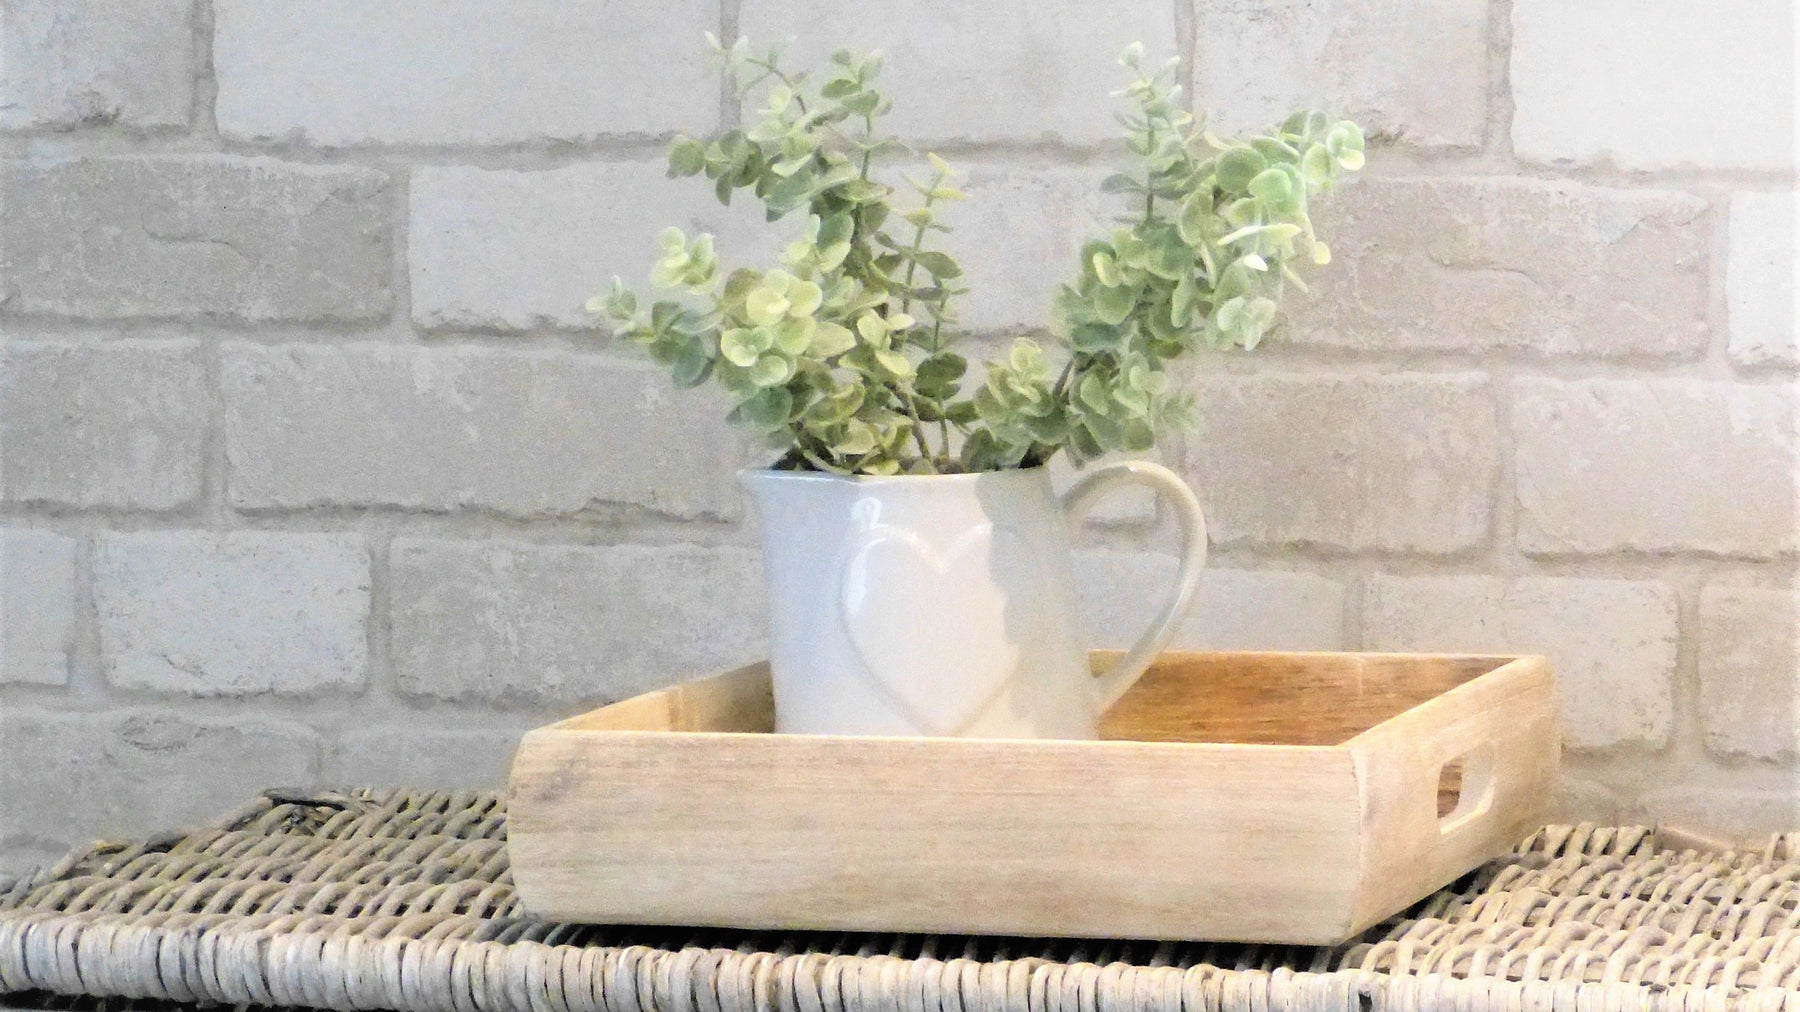 nordic style wooden tray white ceramic jug with faux eucalyptus